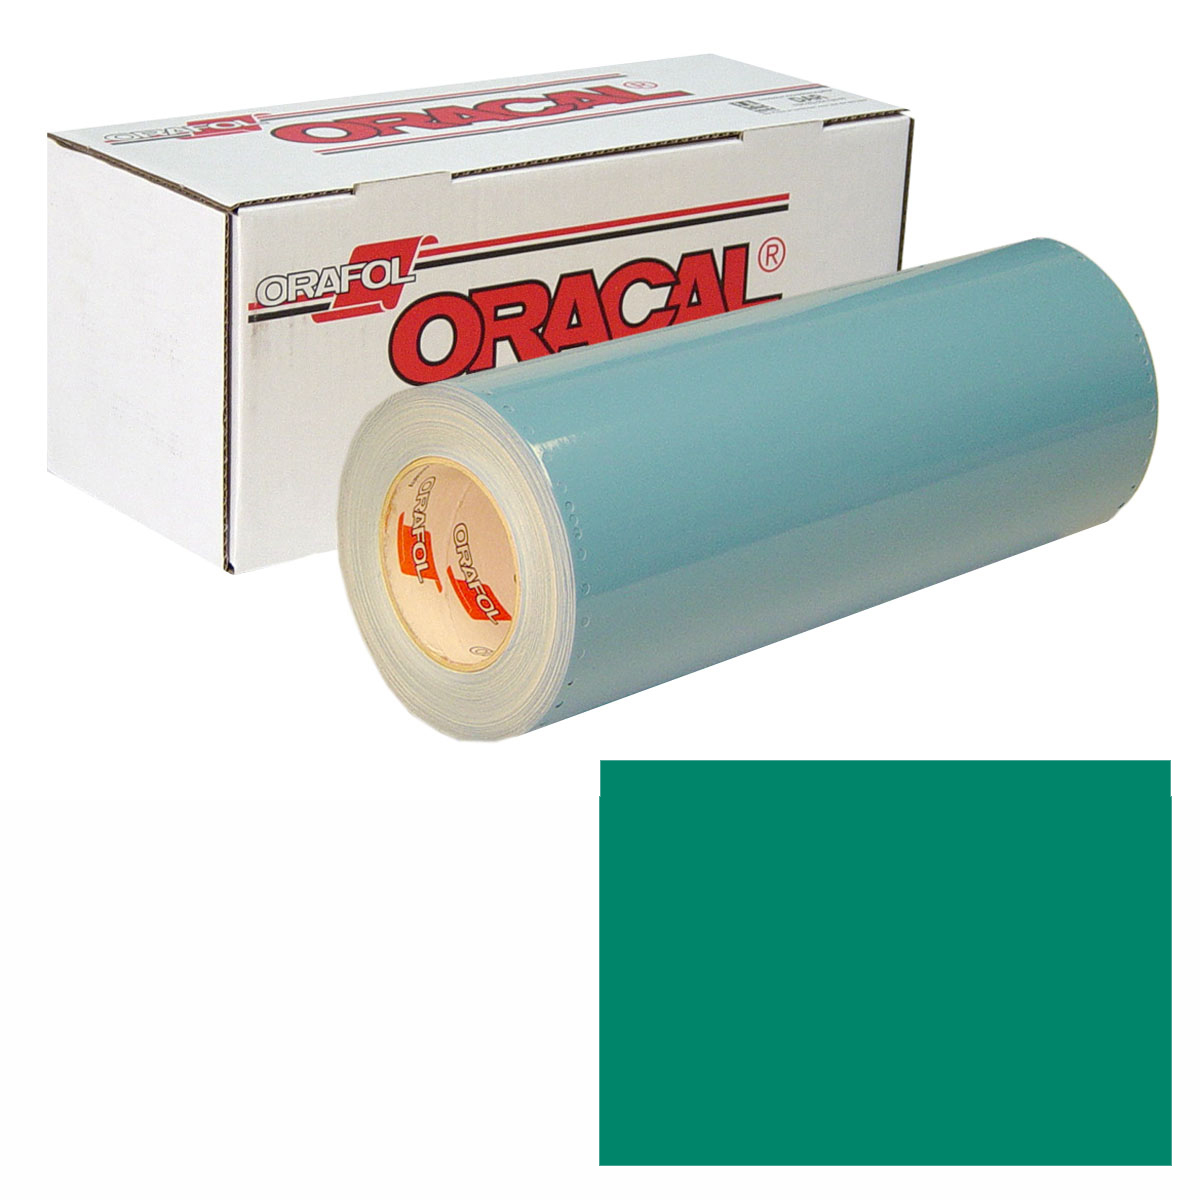 ORACAL 751 Unp 24In X 50Yd 607 Turquoise Gree